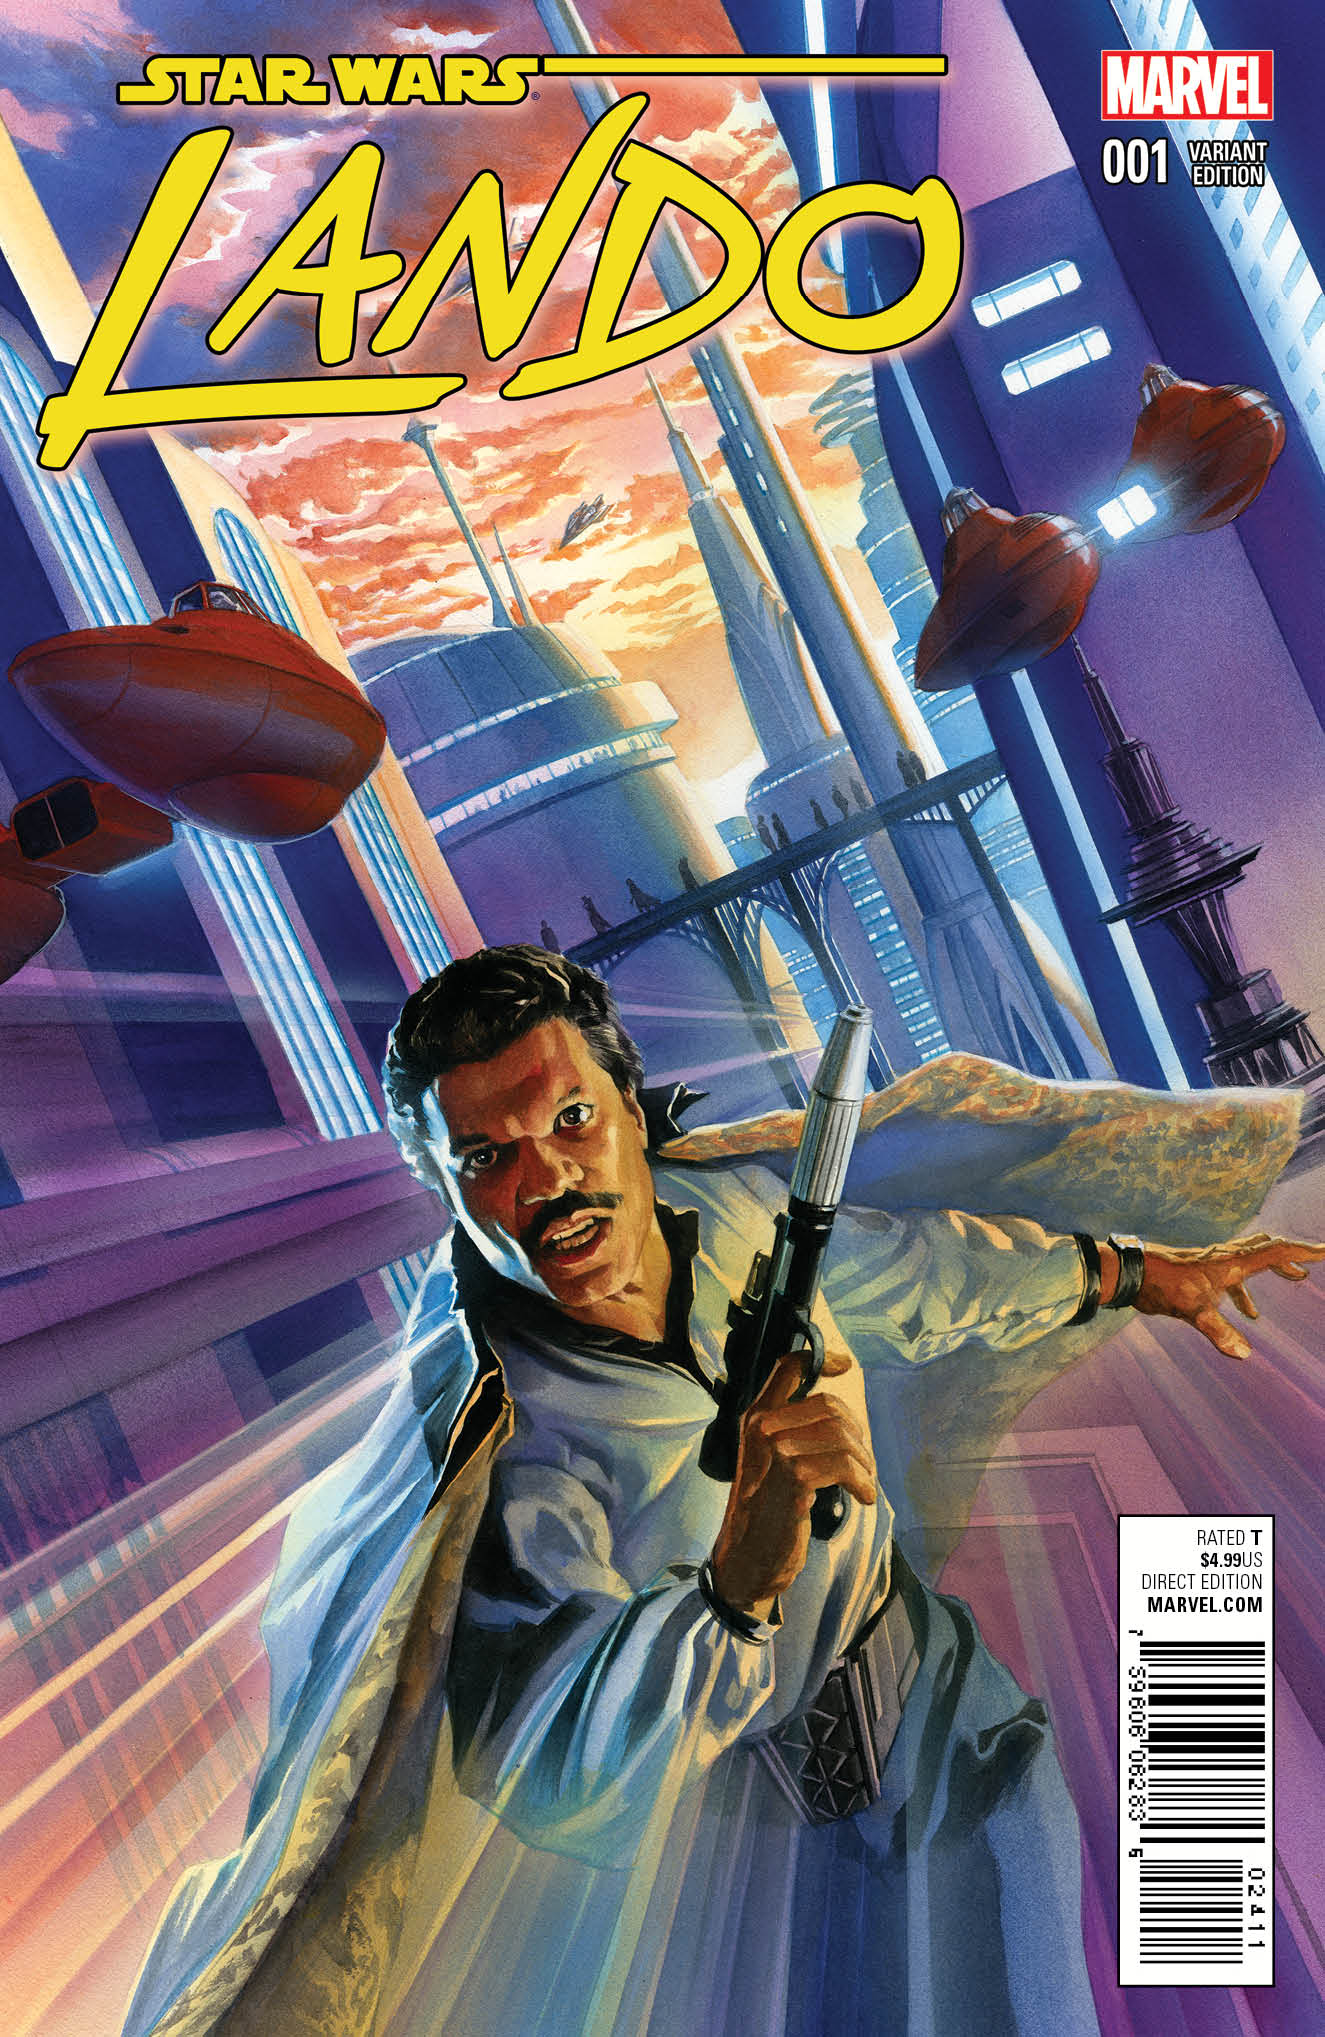 Lando #1 (Alex Ross Variant Cover) (08.07.2015)